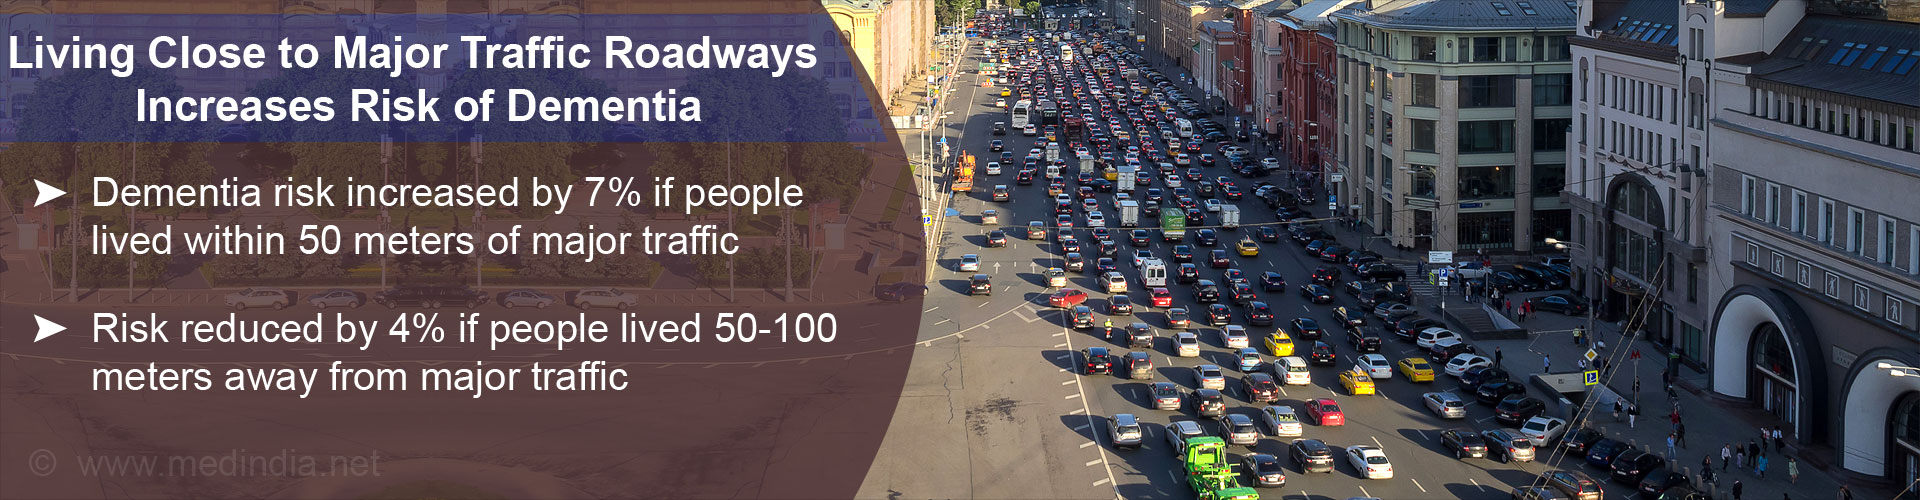 Getting Stuck In Traffic Jams Could Increase Various Health Risks, Including Cancer